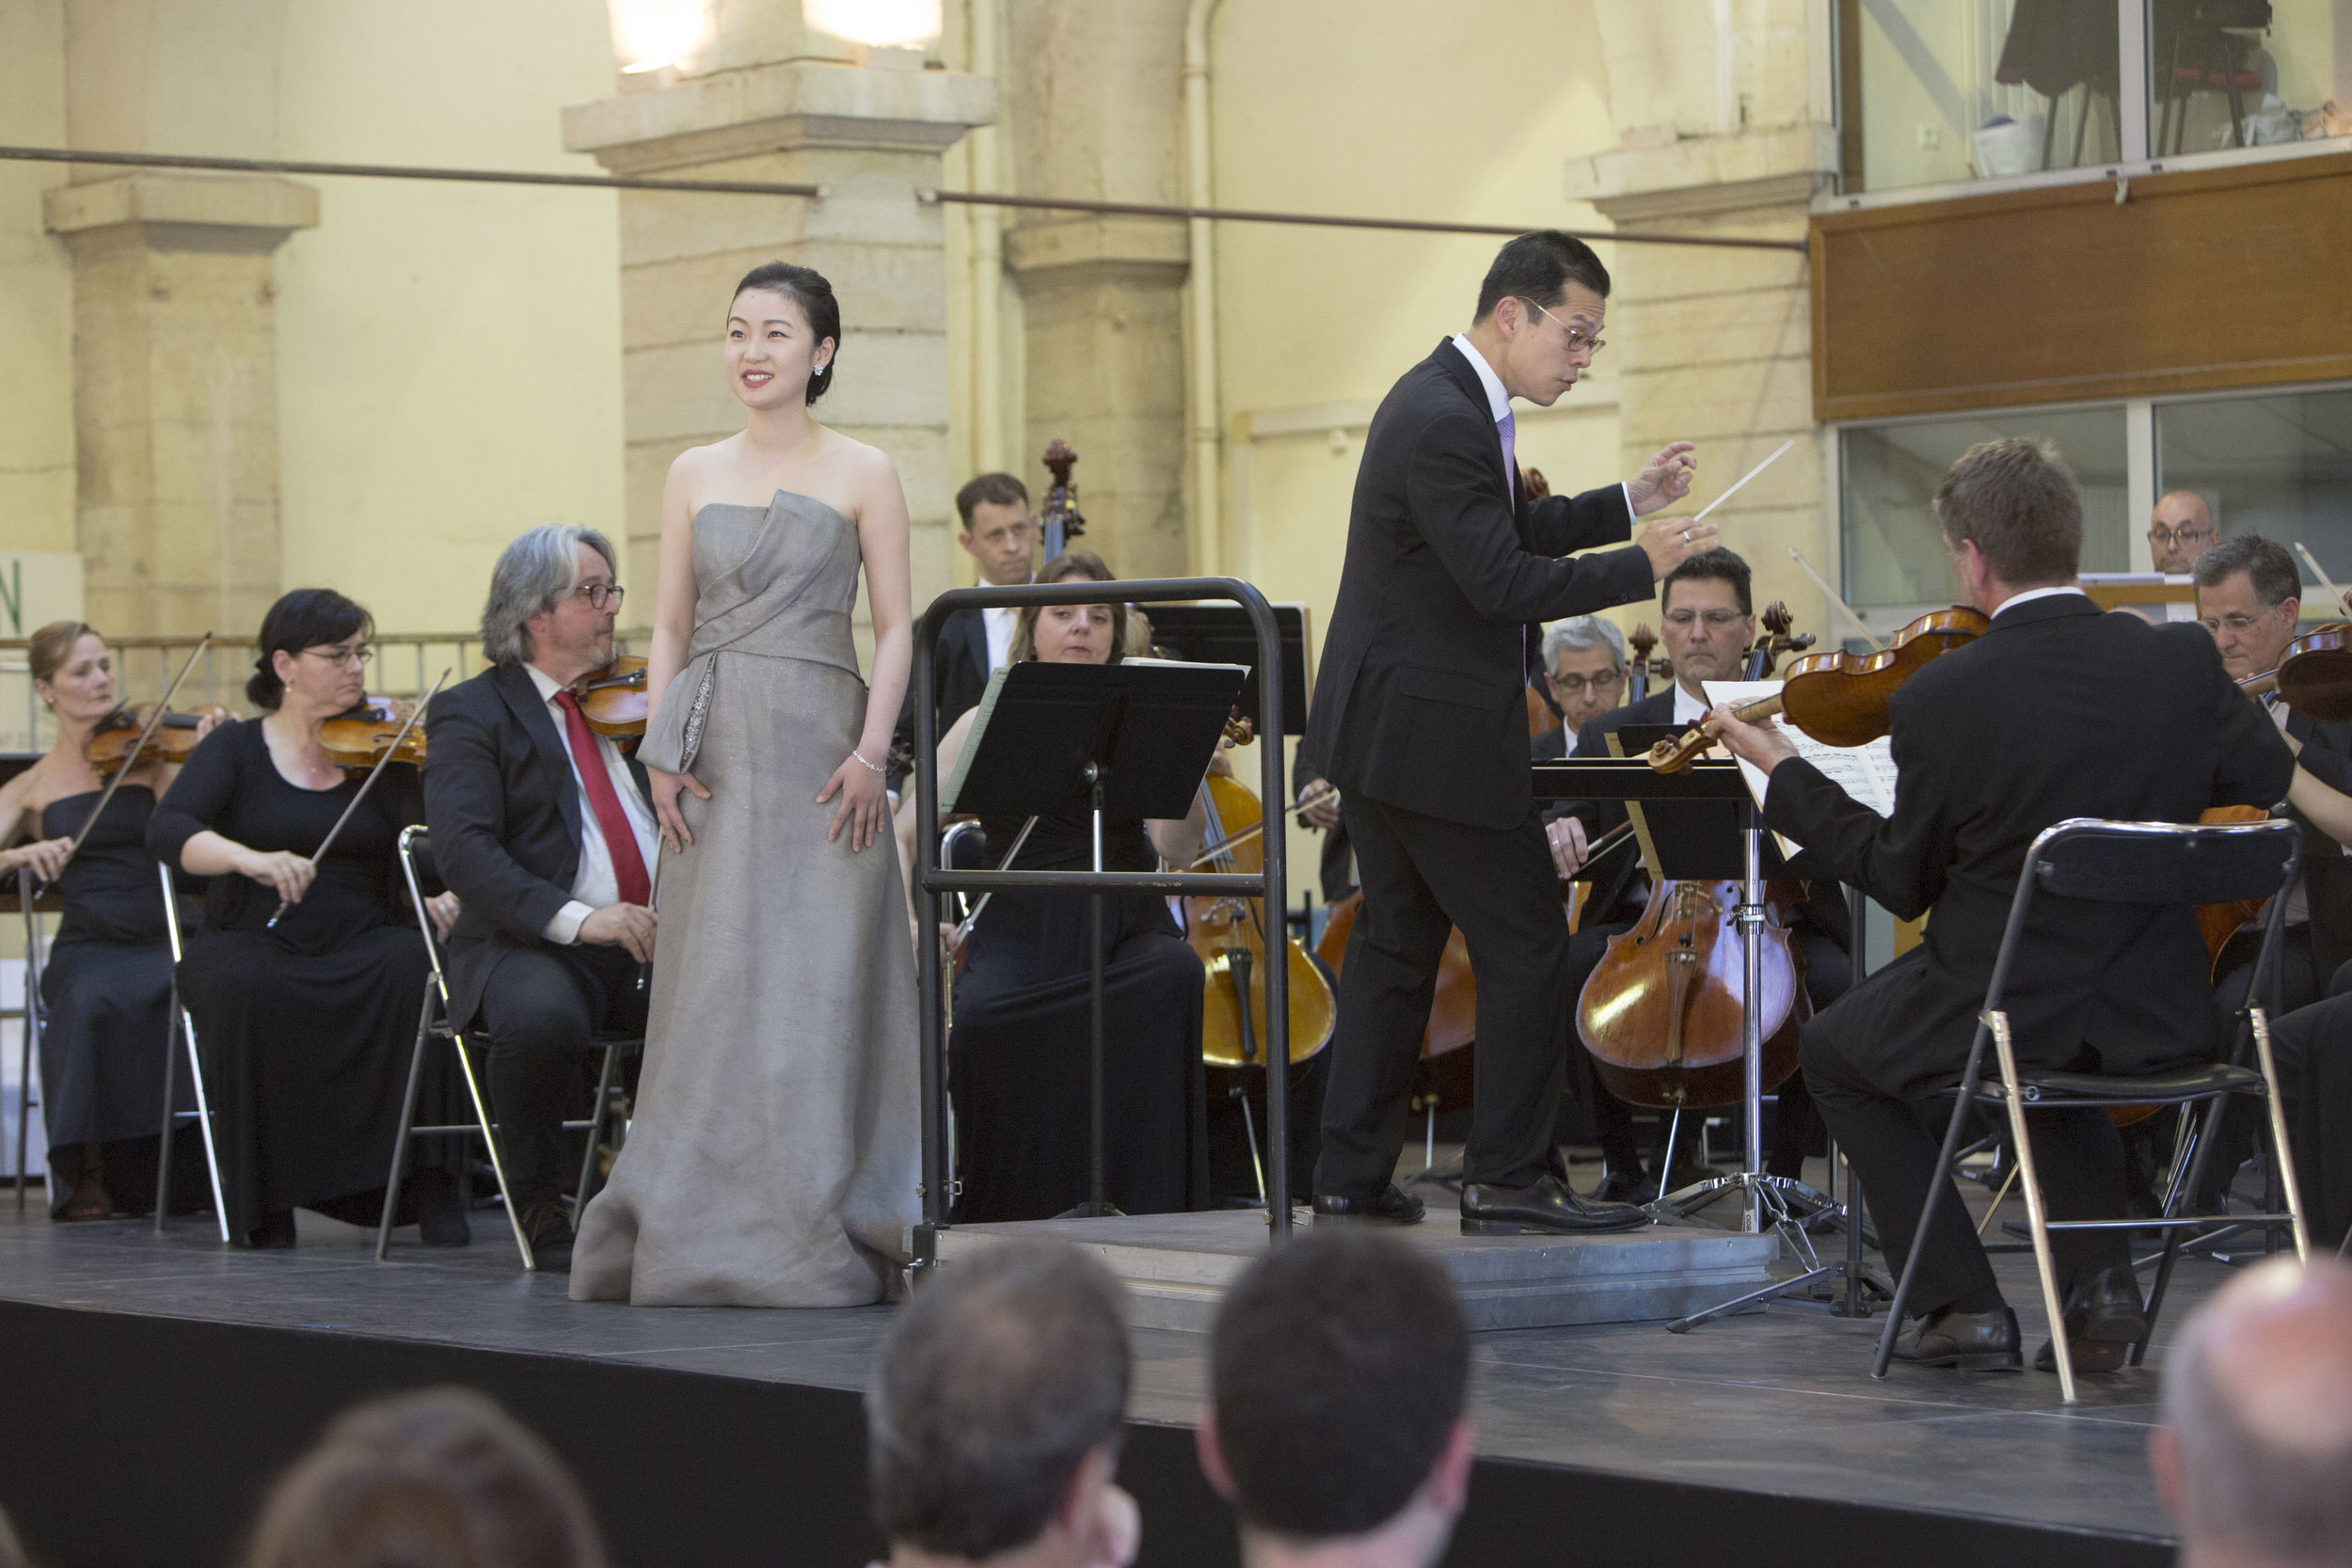 David conducting l'Orchestre Dijon Bourgogne and soprano Ying Fang (Photo by Jean-Louis Bernuy)